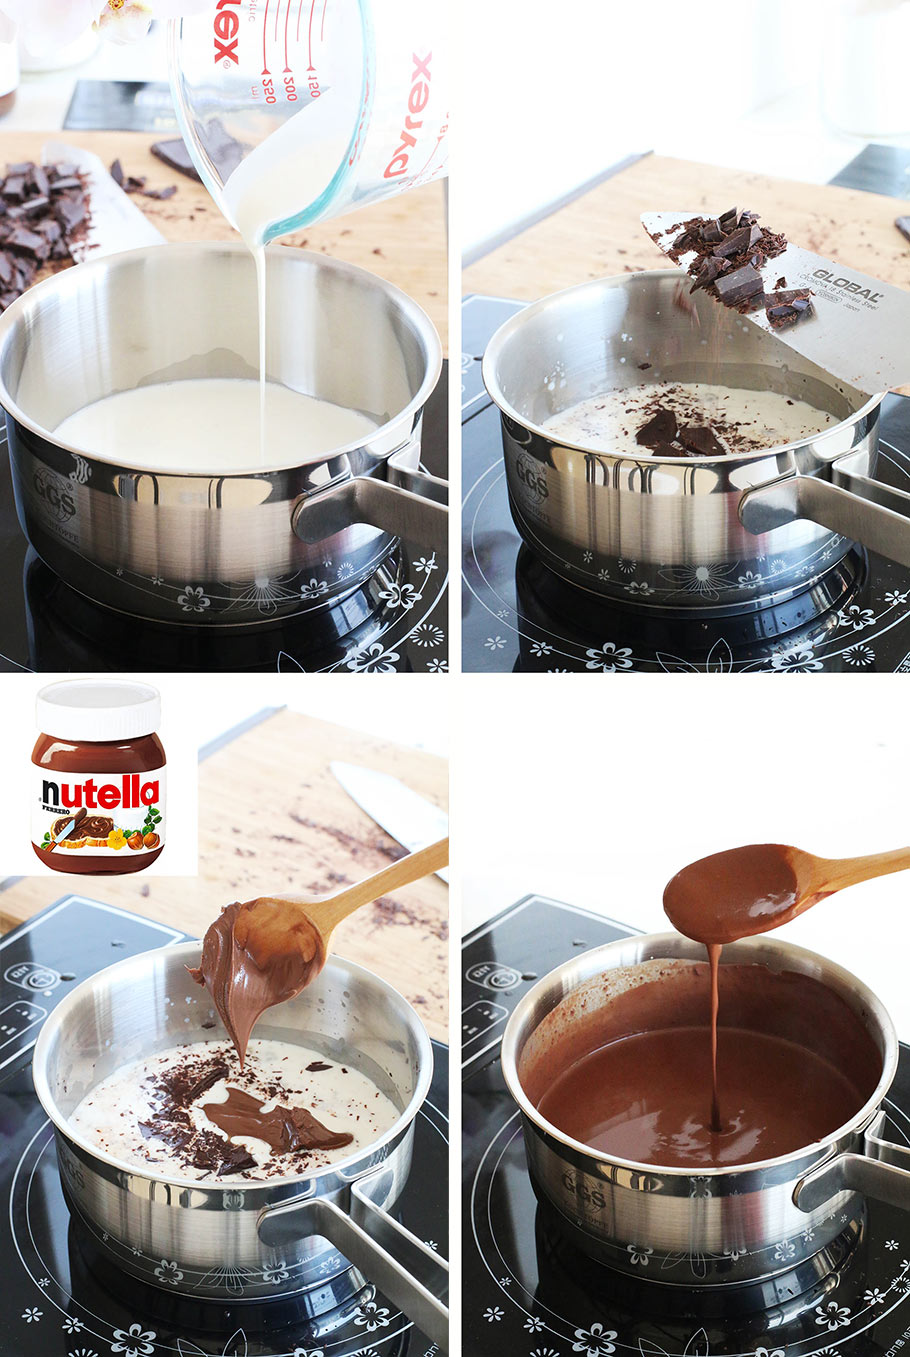 Nutella hot chocolate with real dark chocolate. Make serious Parisian hot chocolate into interesting with Nutella!